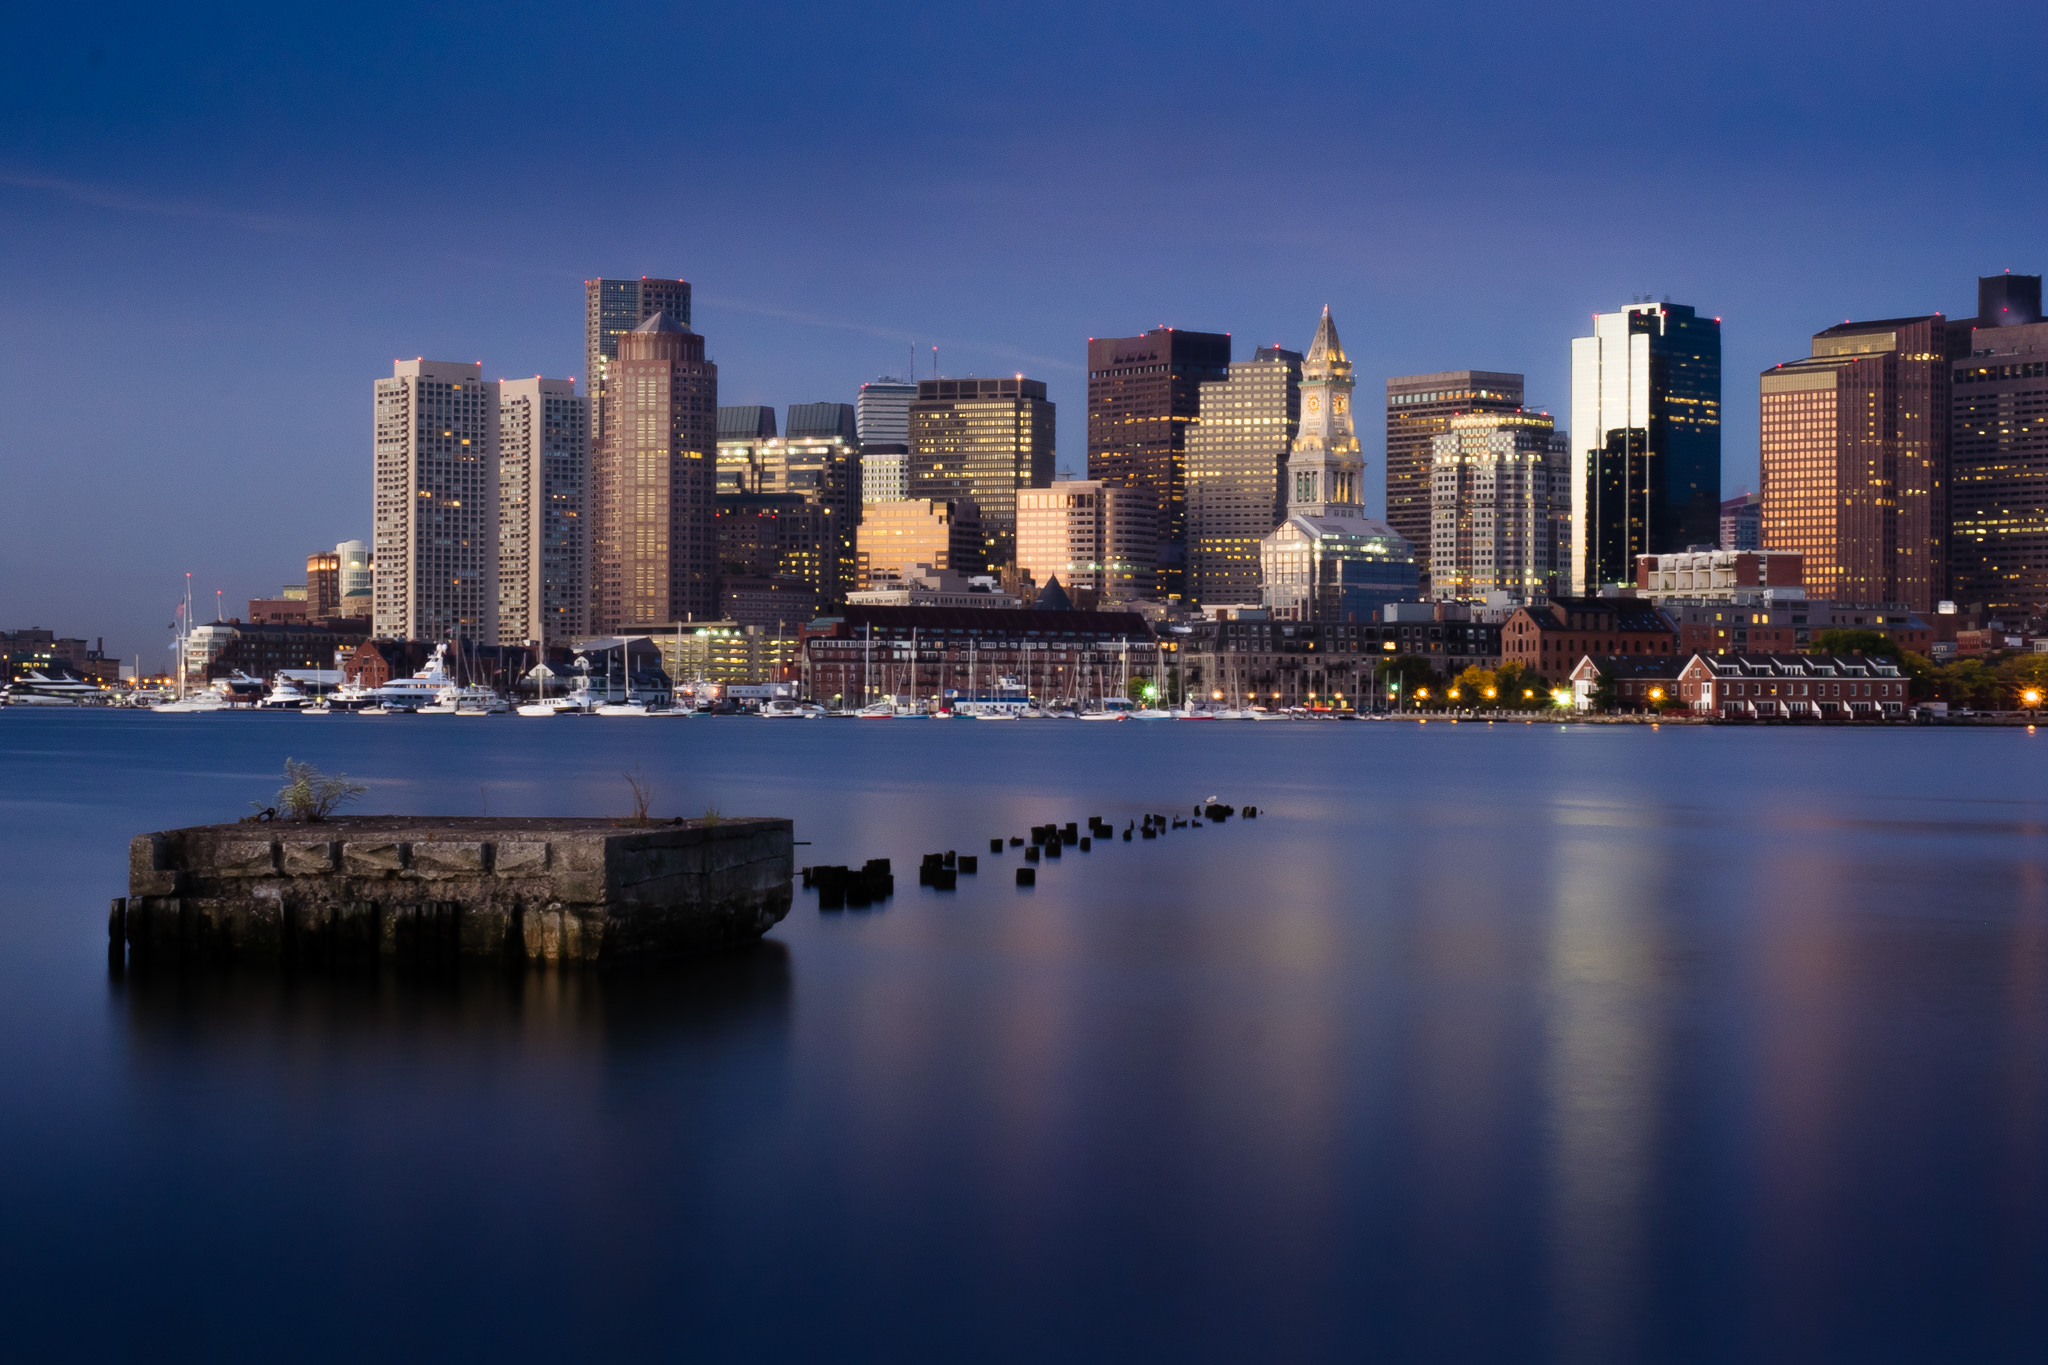 The Boston Skyline from Fan Pier